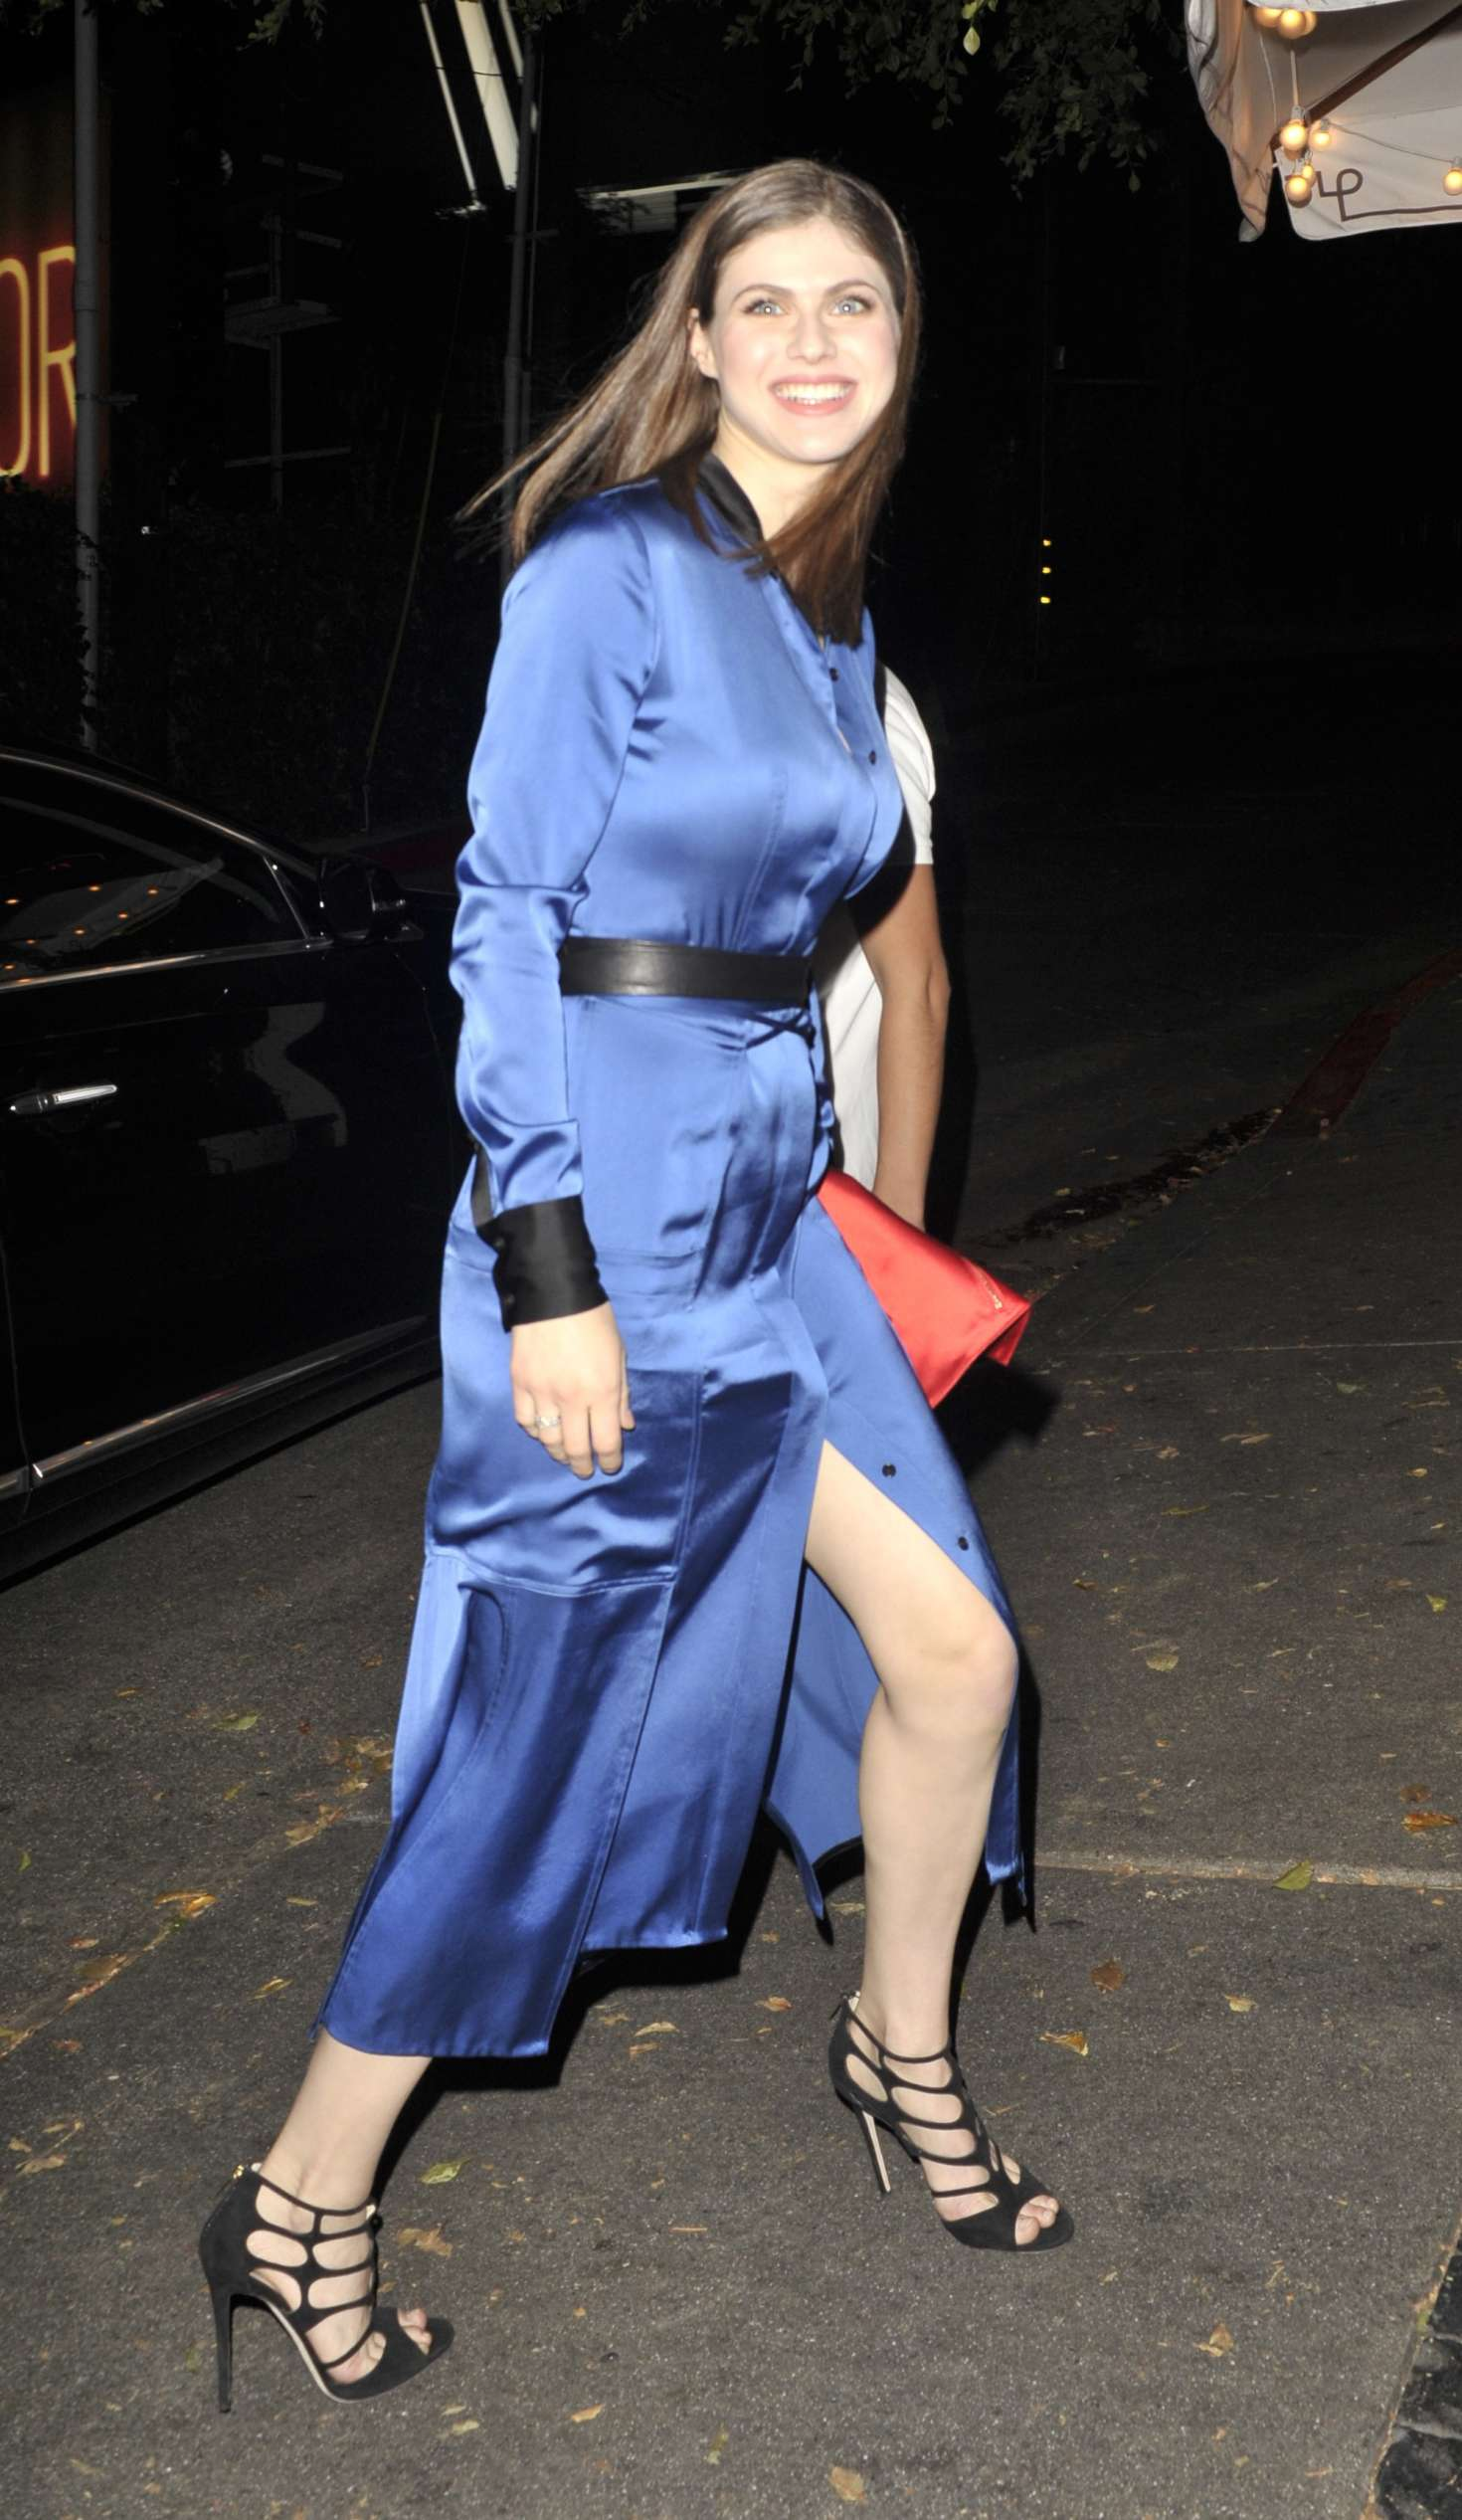 Alexandra Daddario In Blue Dress At Chateau Marmont Hotel